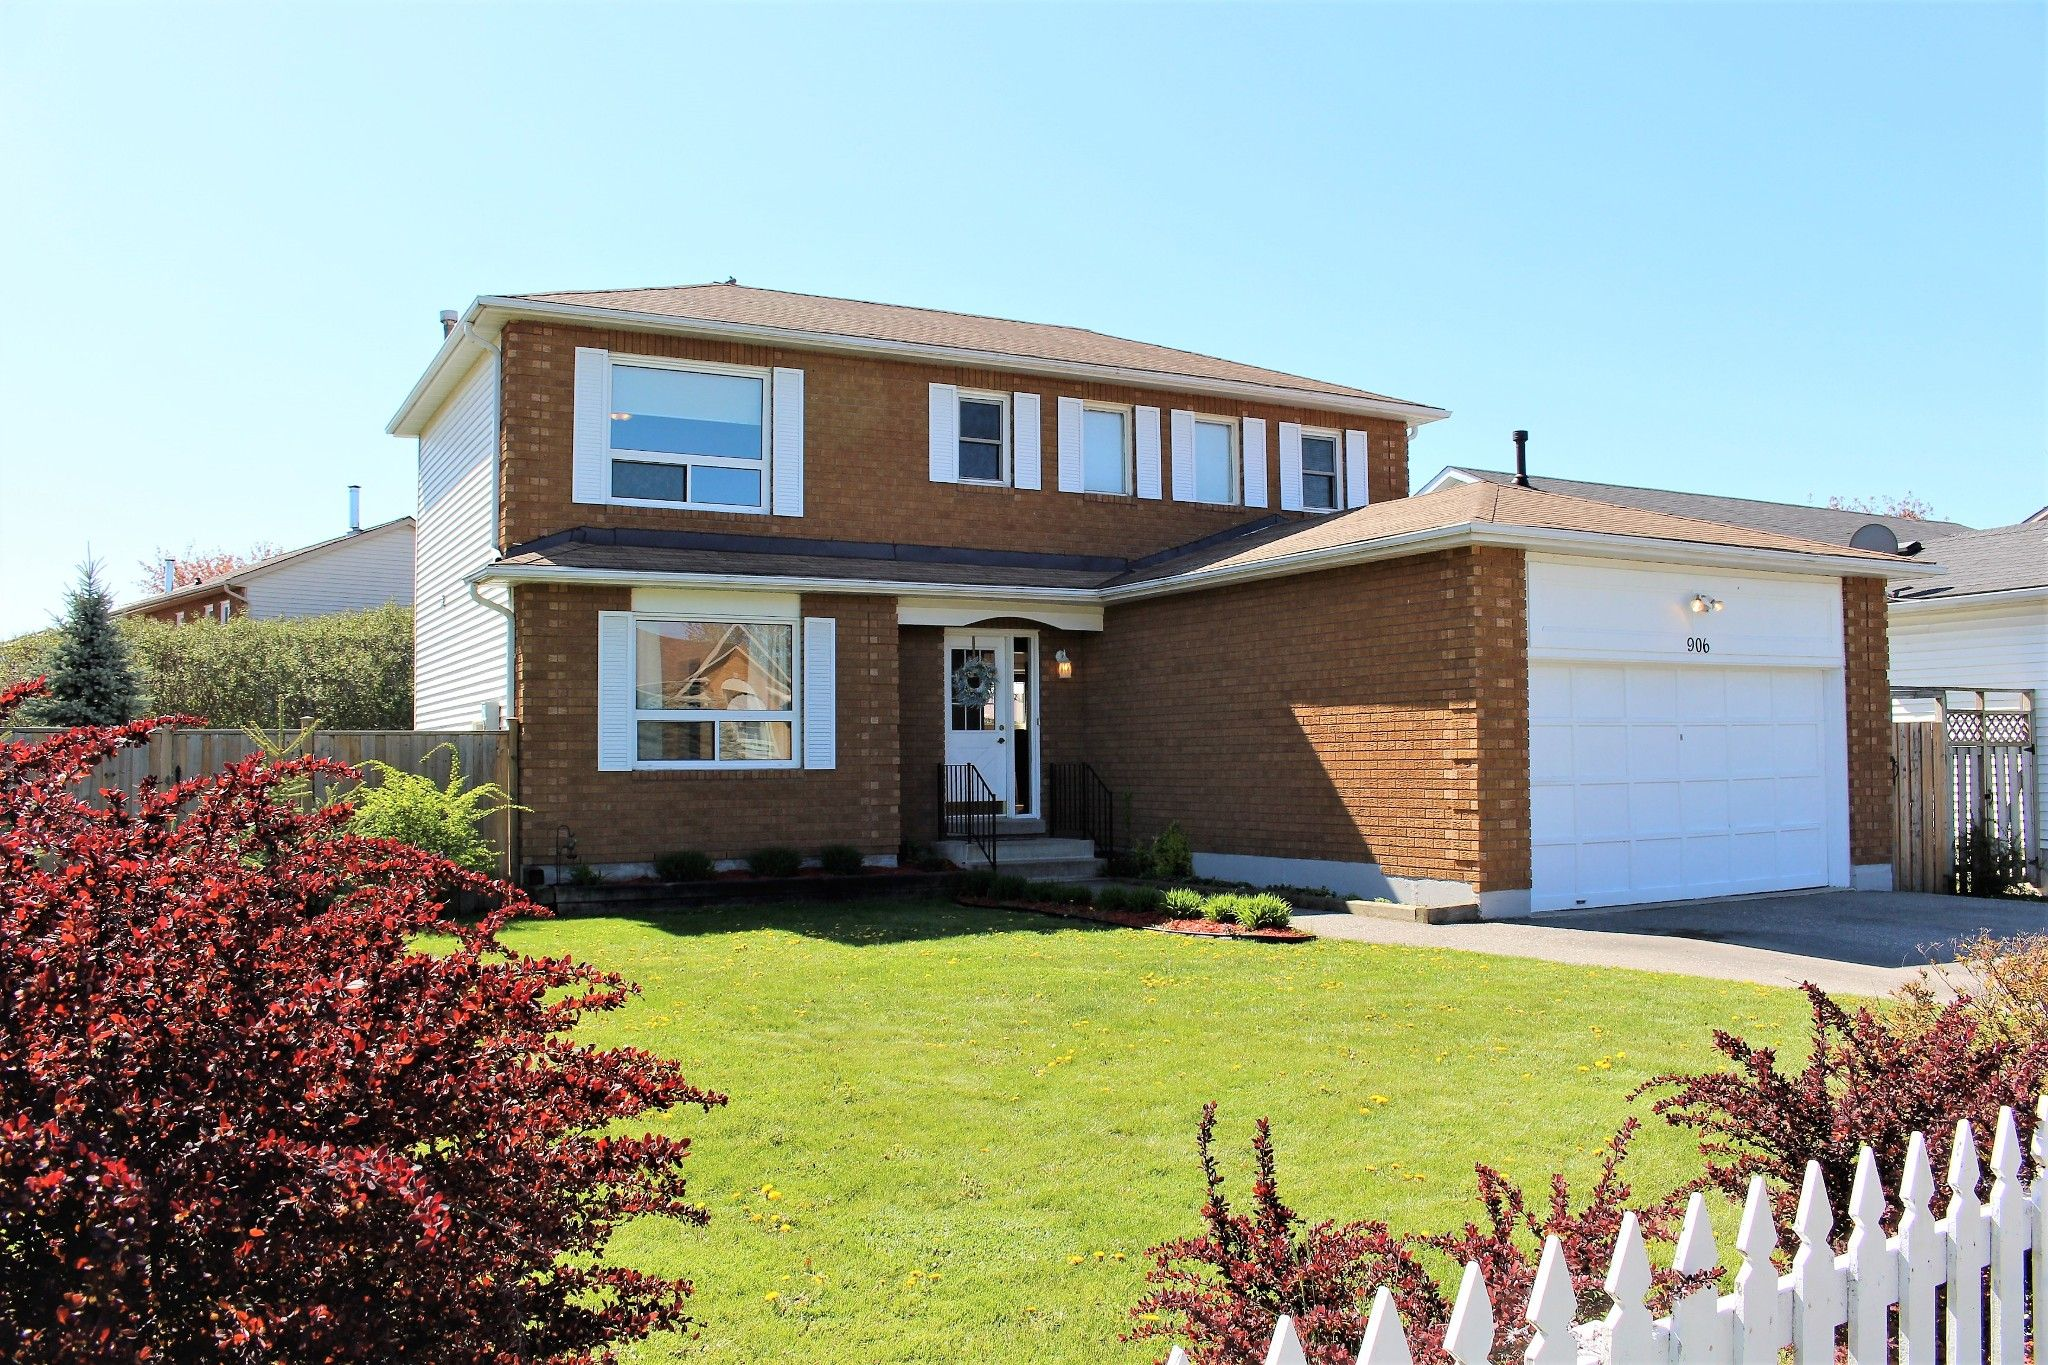 Main Photo: 906 Chipping Park in Cobourg: House for sale : MLS®# X5250442